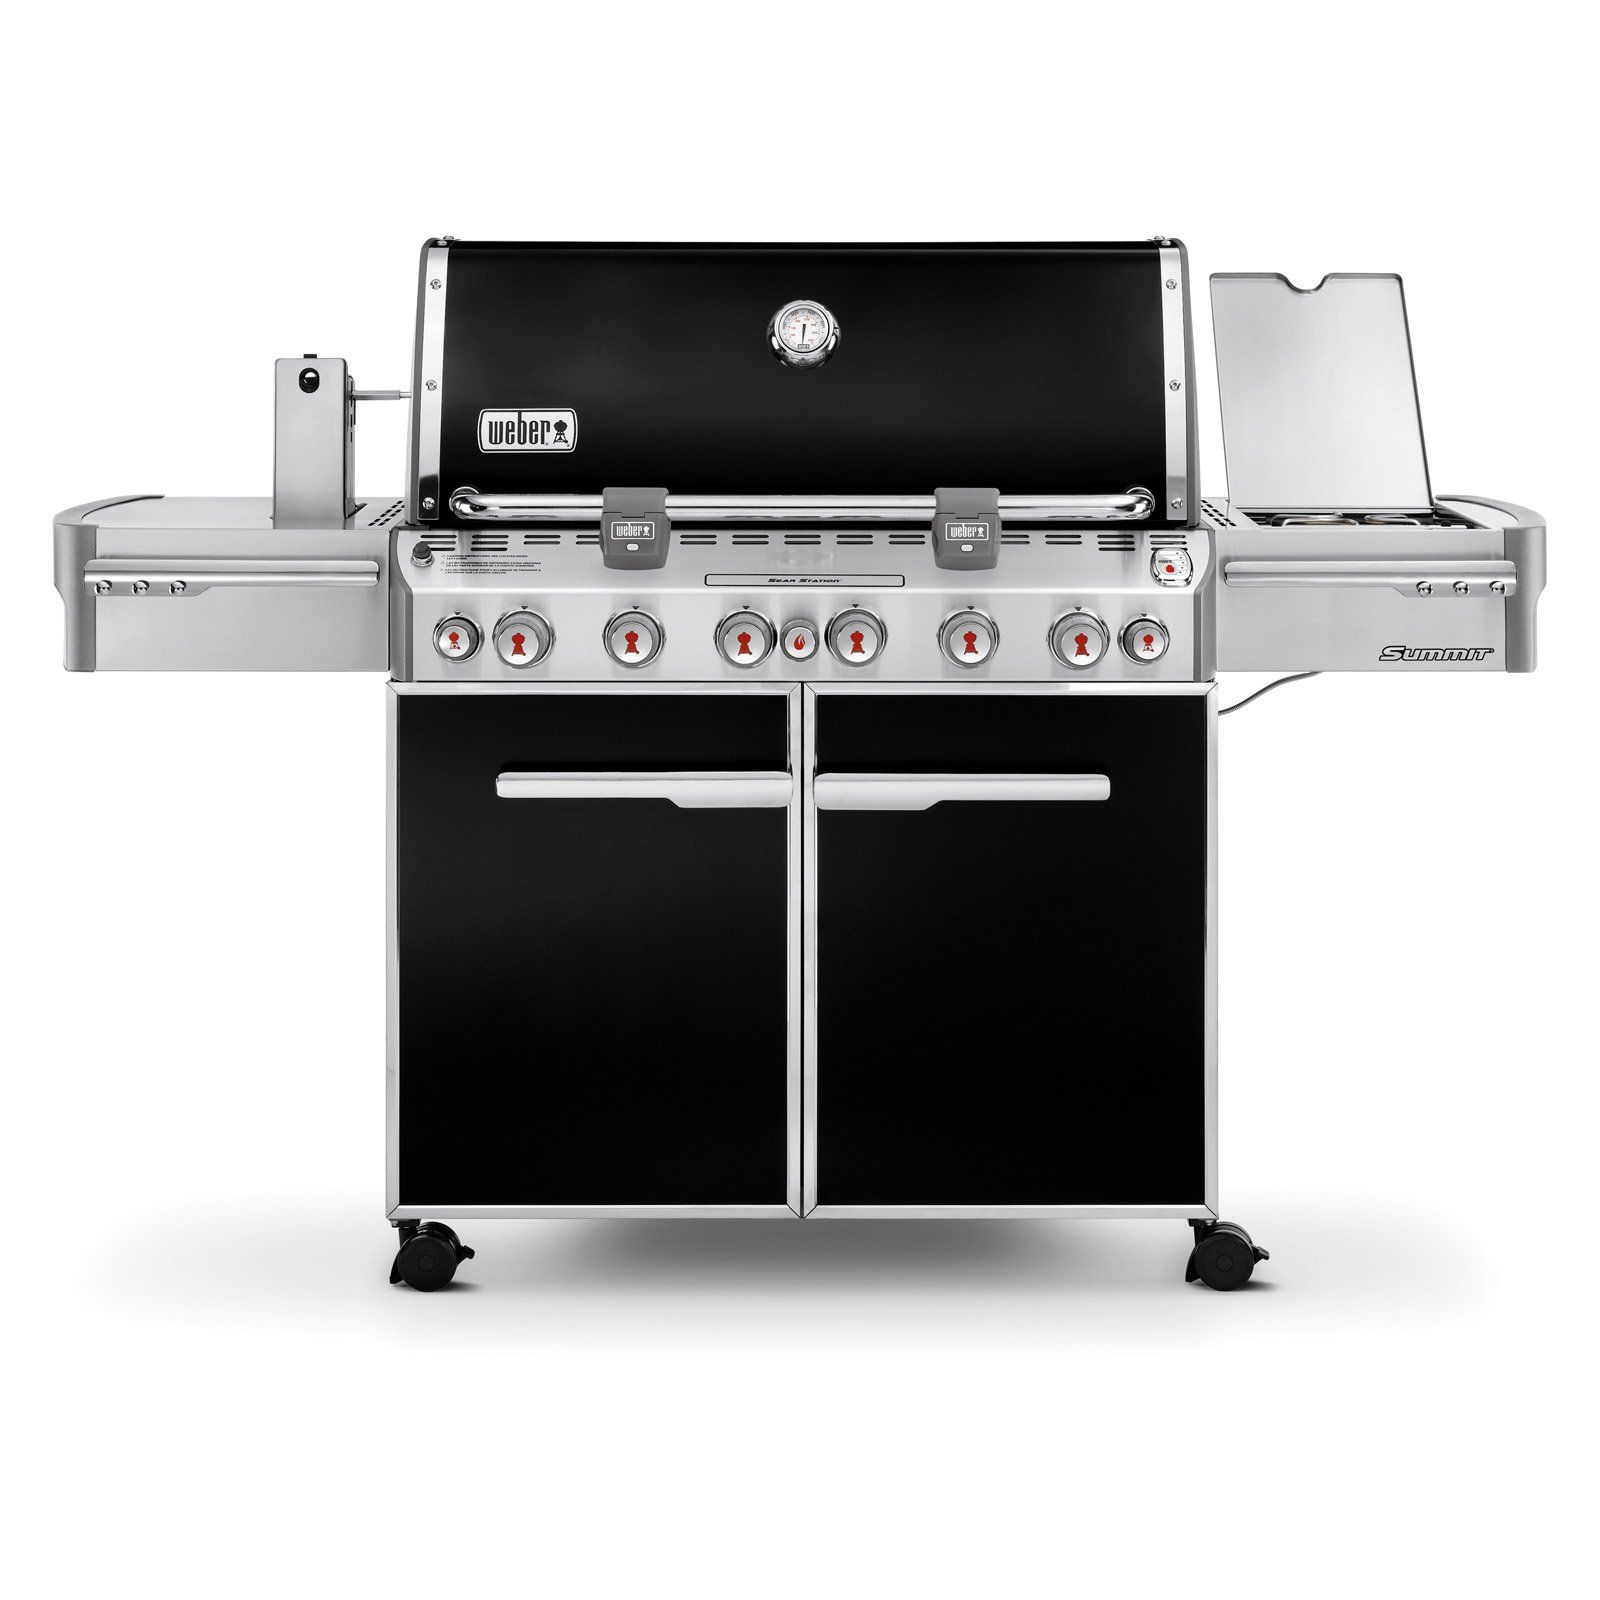 die besten 25 weber gas grill ideen auf pinterest weber gasgrill reinigen weber gasgrill und. Black Bedroom Furniture Sets. Home Design Ideas